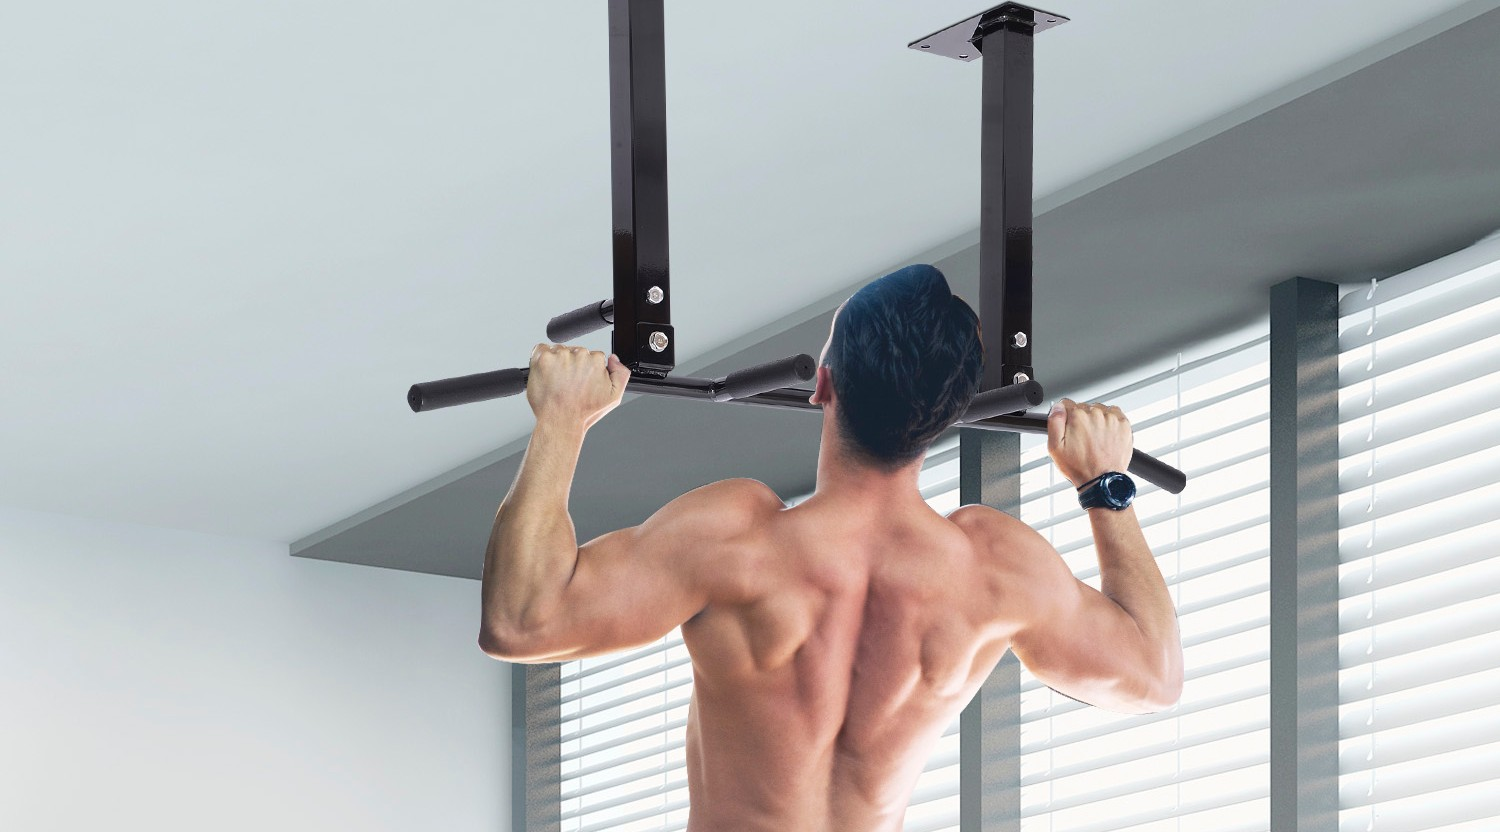 What is the Best Width, Diameter, Pipe, Size for a Pull Up Bar?